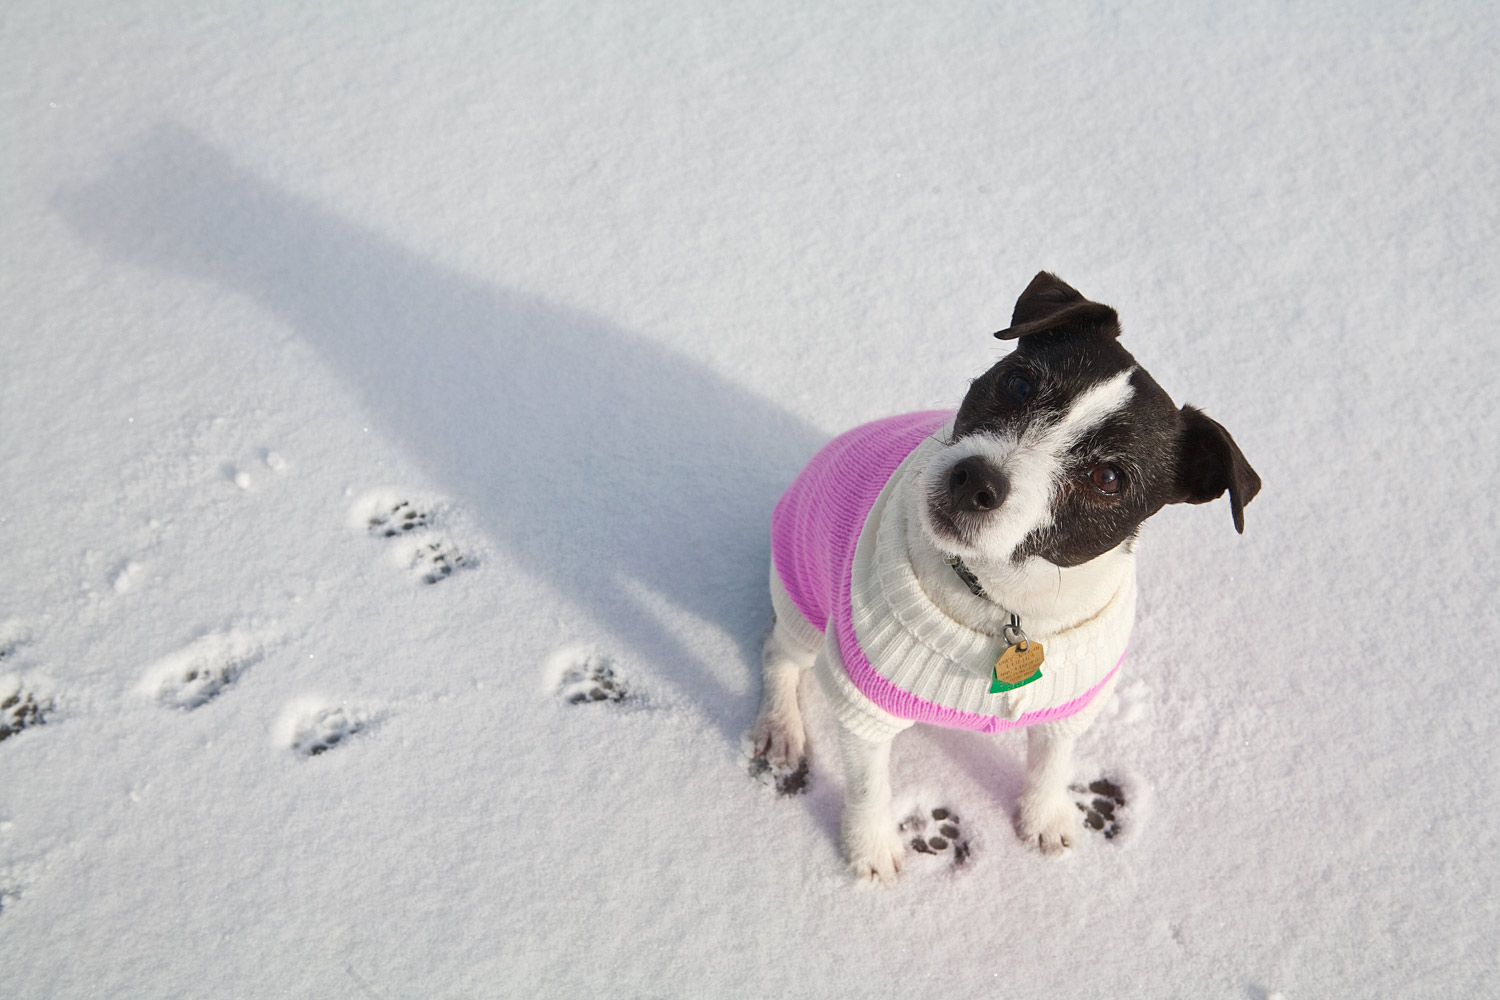 Jack Russell Terrier photographed while wearing a pink sweater in the snow.